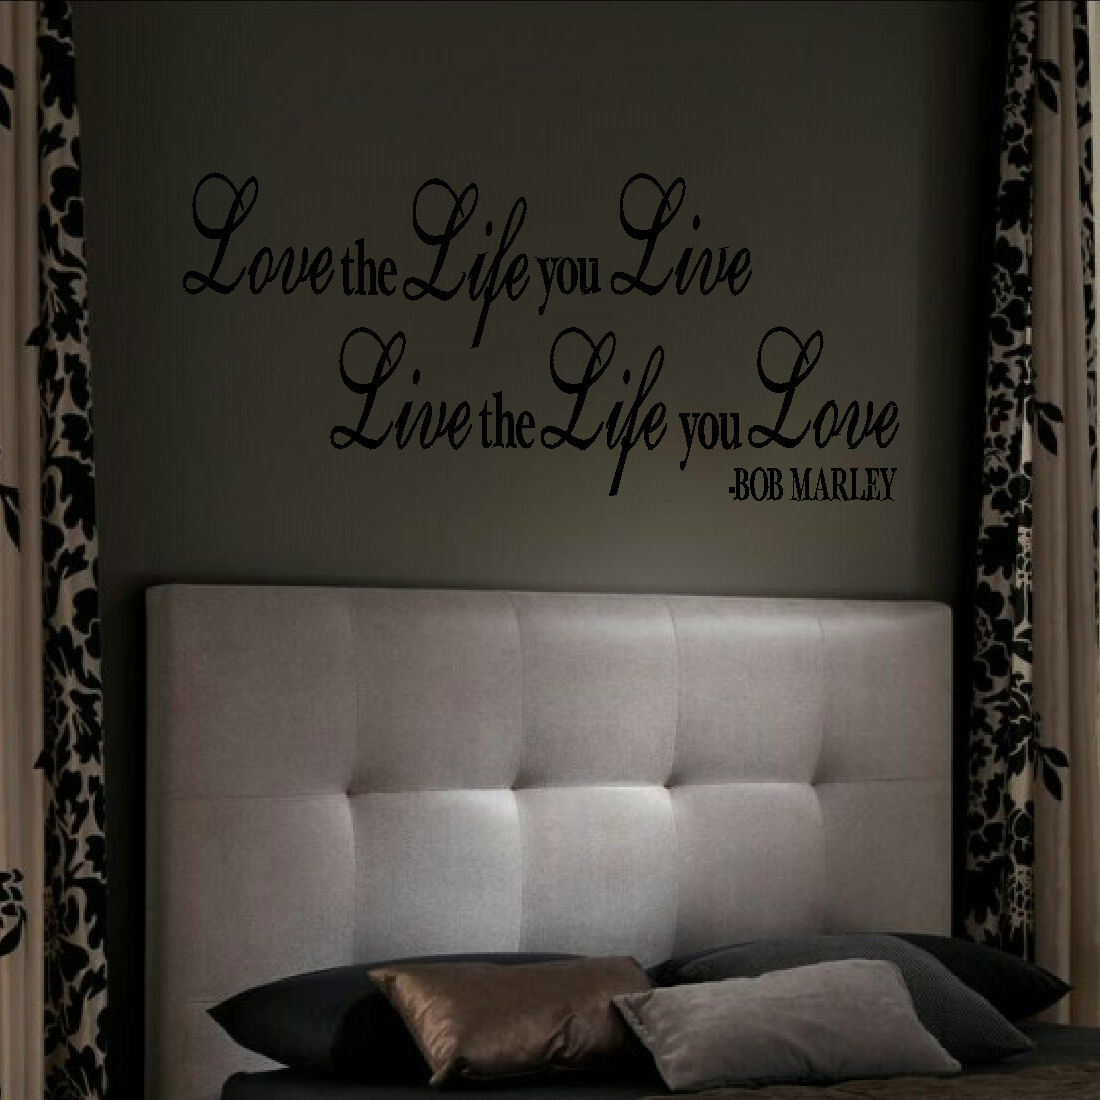 Love Quotes About Life: LARGE-QUOTE-BOB-MARLEY-LOVE-THE-LIFE-YOU-LIVE-WALL-ART